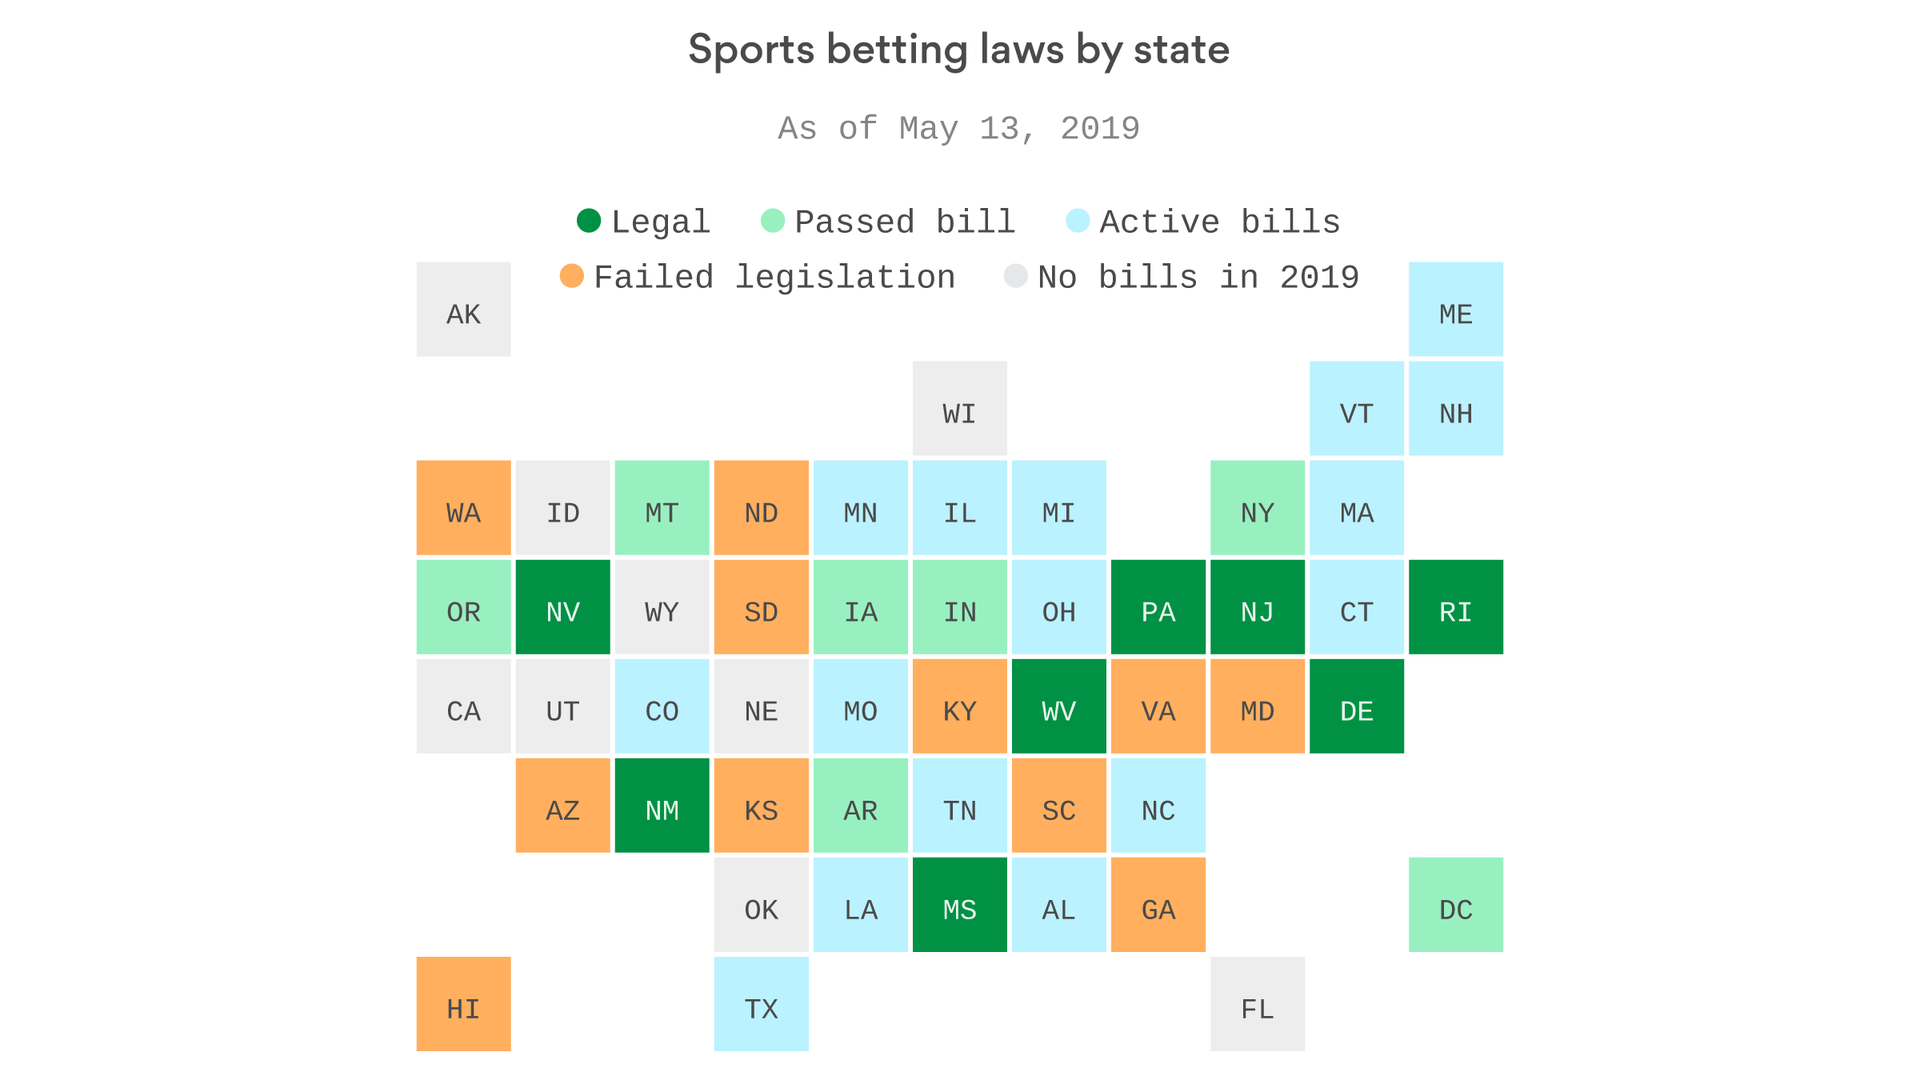 sports betting legalization process by state axios